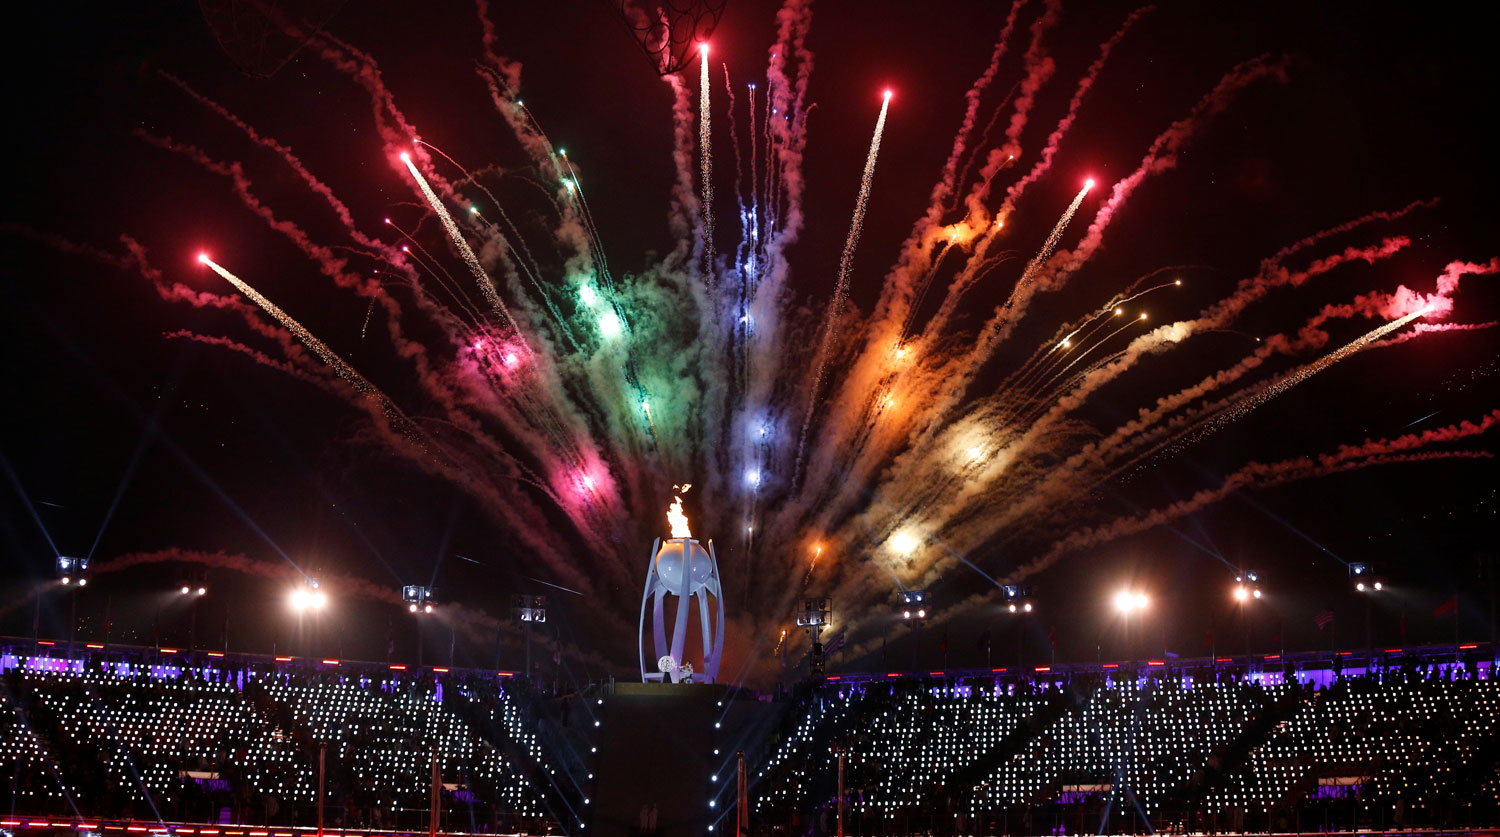 Pyeongchang 2018 Winter Paralympics - Opening ceremony - Pyeongchang Olympic Stadium - Pyeongchang, South Korea - March 9, 2018 - The Paralympic flame is seen during fireworks at the opening ceremony. REUTERS/Paul Hanna - RC12FF3DB850